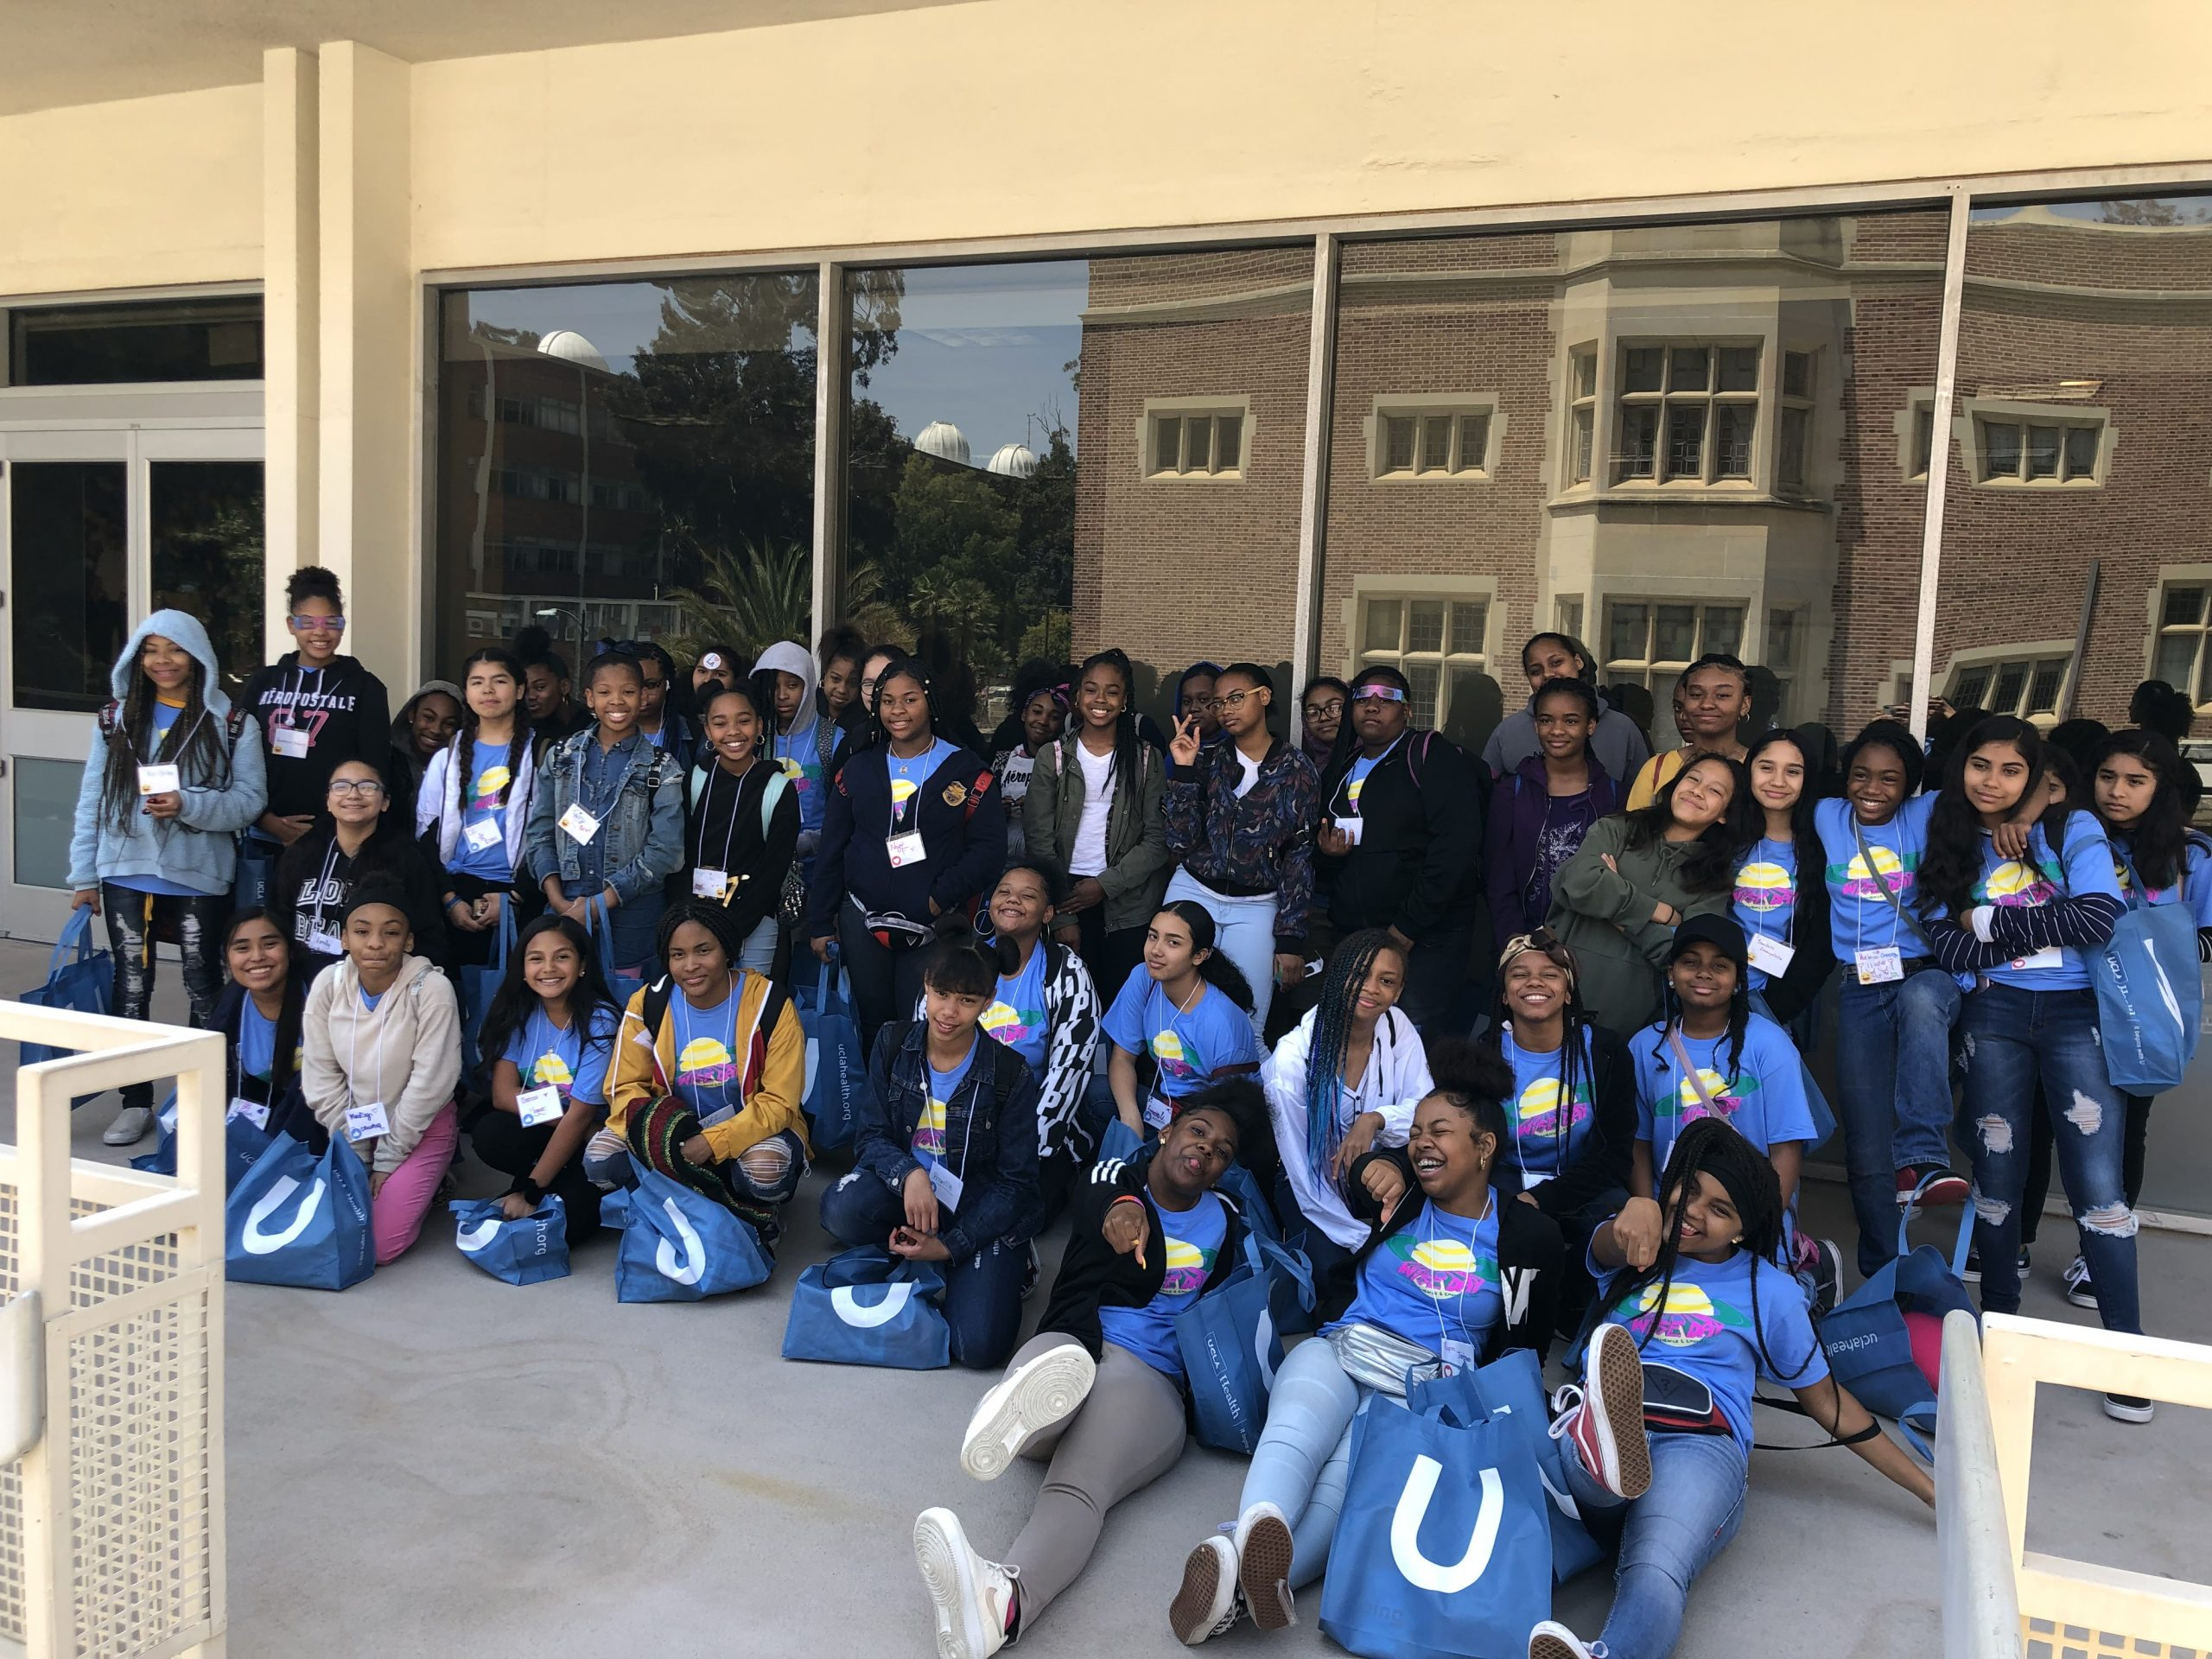 Young female students pose at Ackerman during the 2019 Women in Science and Engineering Day.